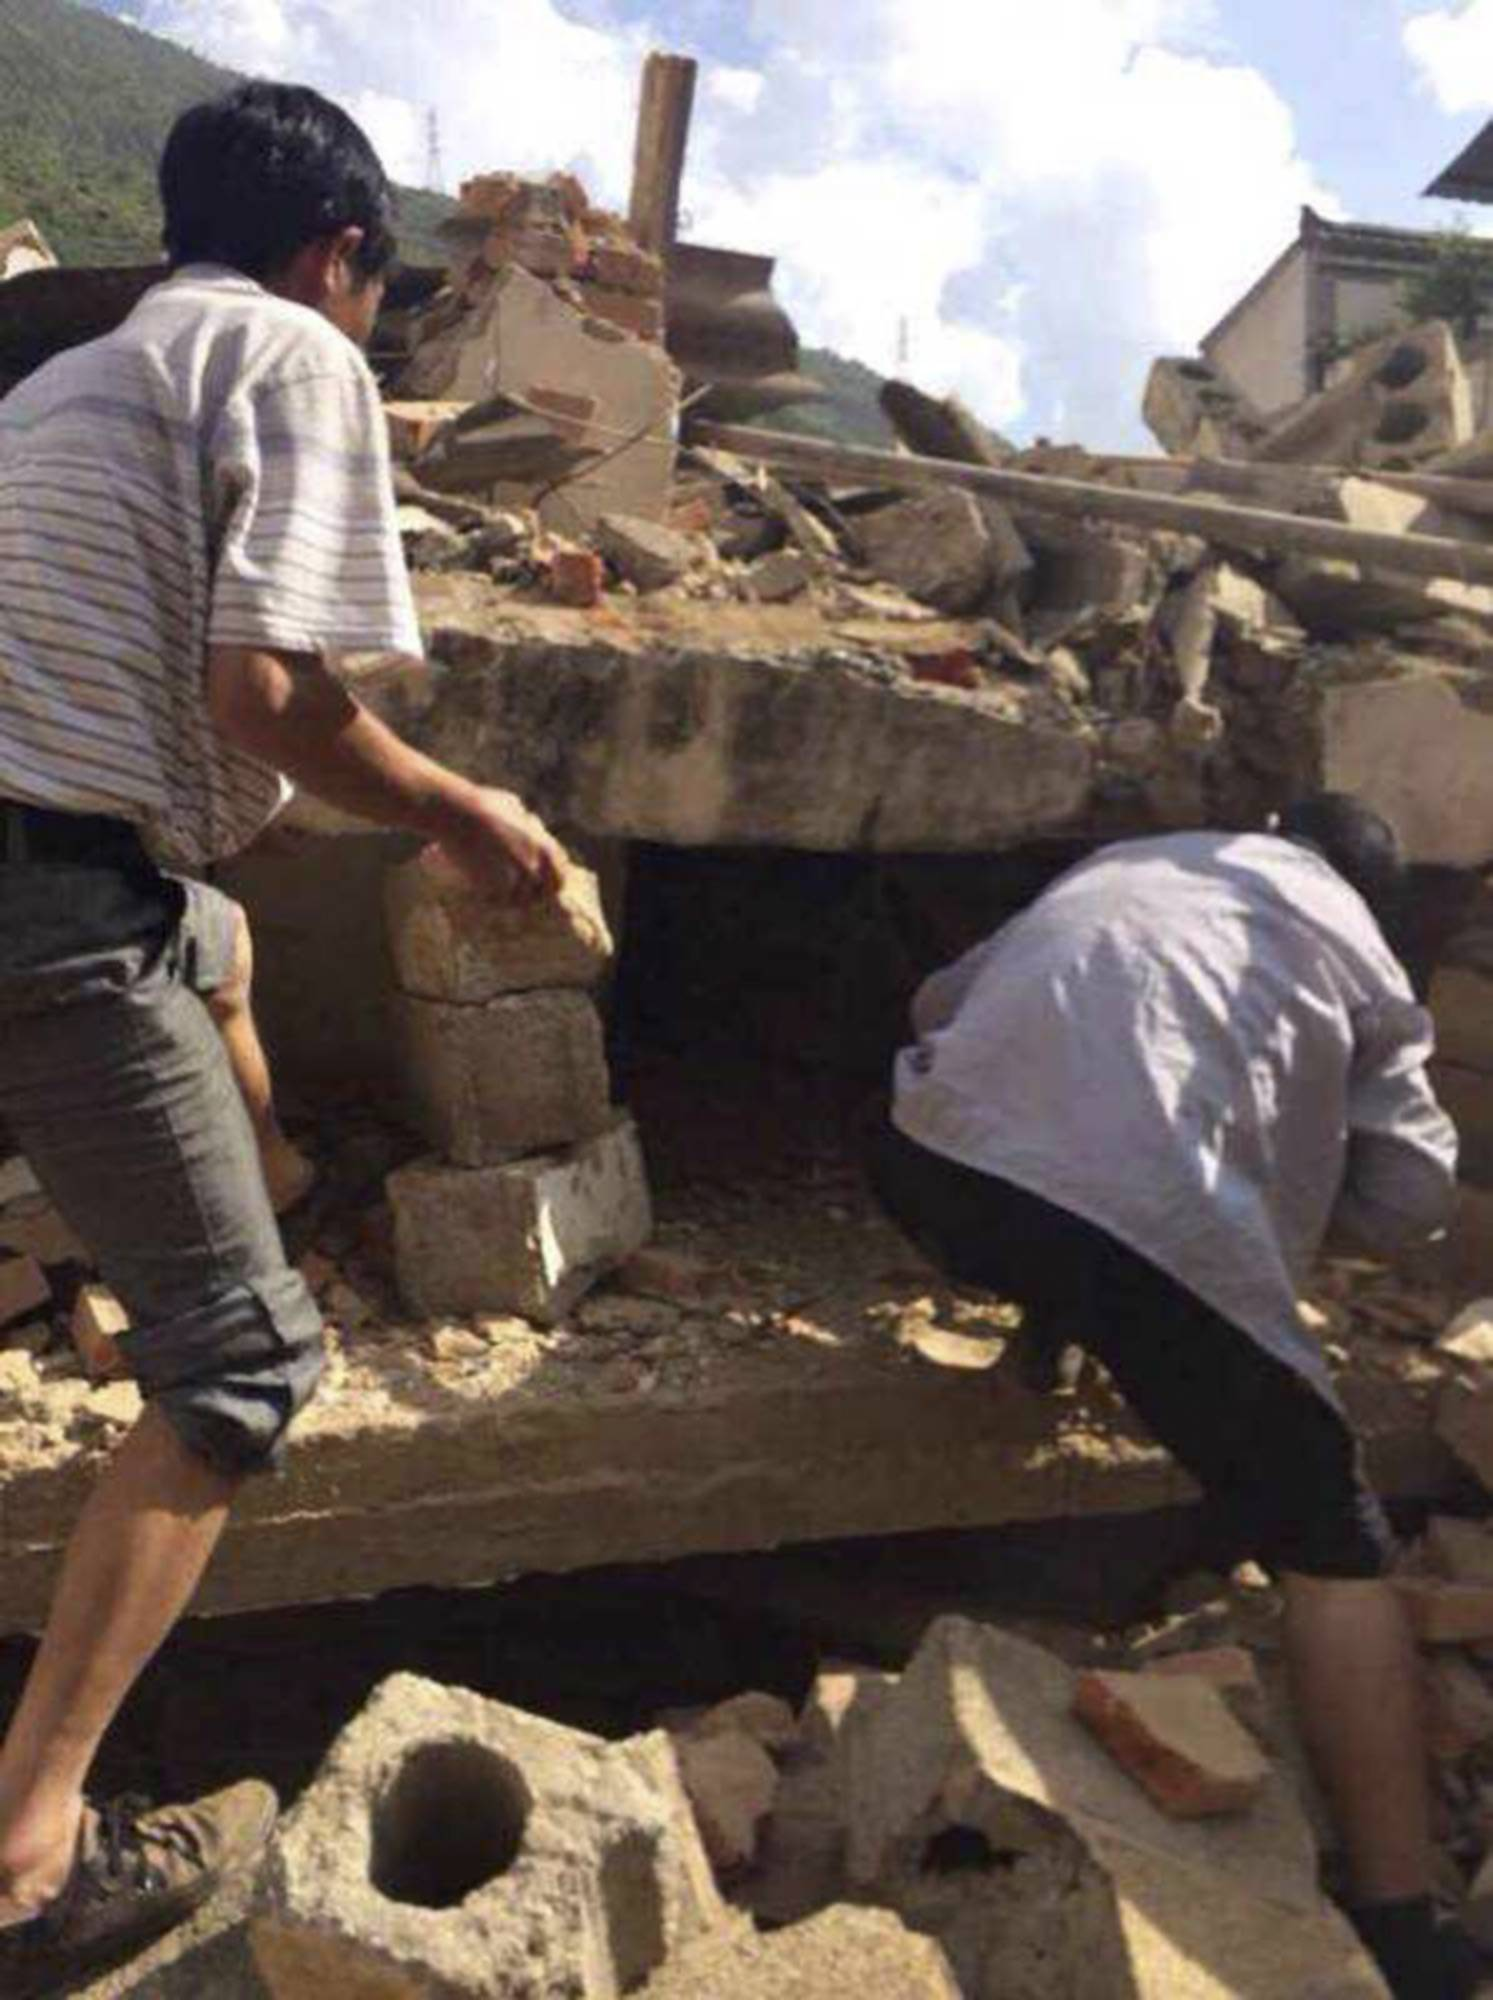 In this photo taken by cellphone and released by China's Xinhua News Agency, men at rubbles of buildings look for survivors after an earthquake Sunday in Ludian County of Zhaotong City in southwest China's Yunnan Province. A strong earthquake rattled southwest China on Sunday, knocking out communication and power lines and causing people to rush out of buildings, but there were no immediate reports of injuries.